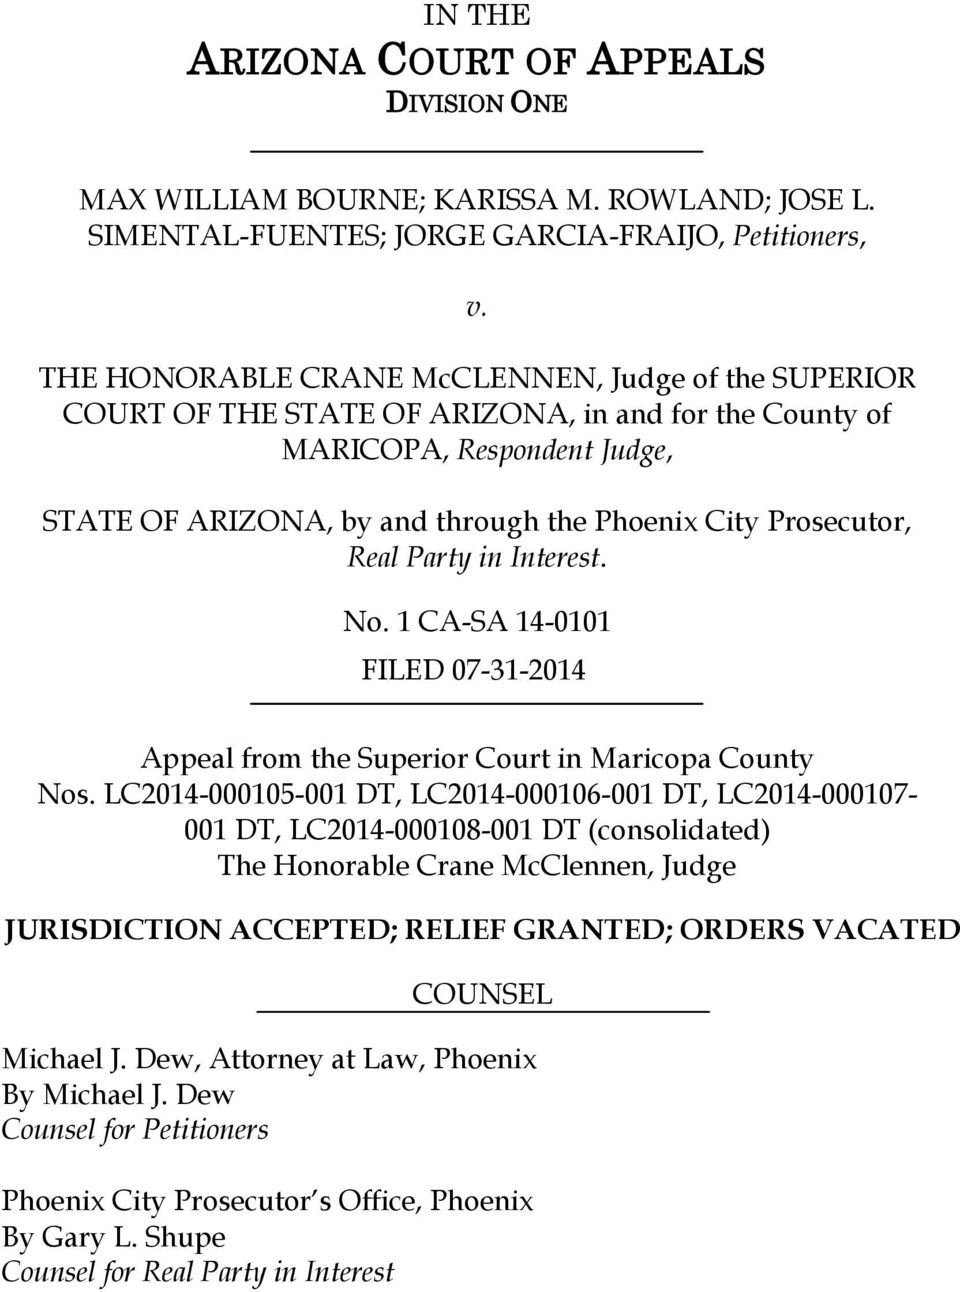 Real Party in Interest. No. 1 CA-SA 14-0101 Appeal from the Superior Court in Maricopa County Nos.